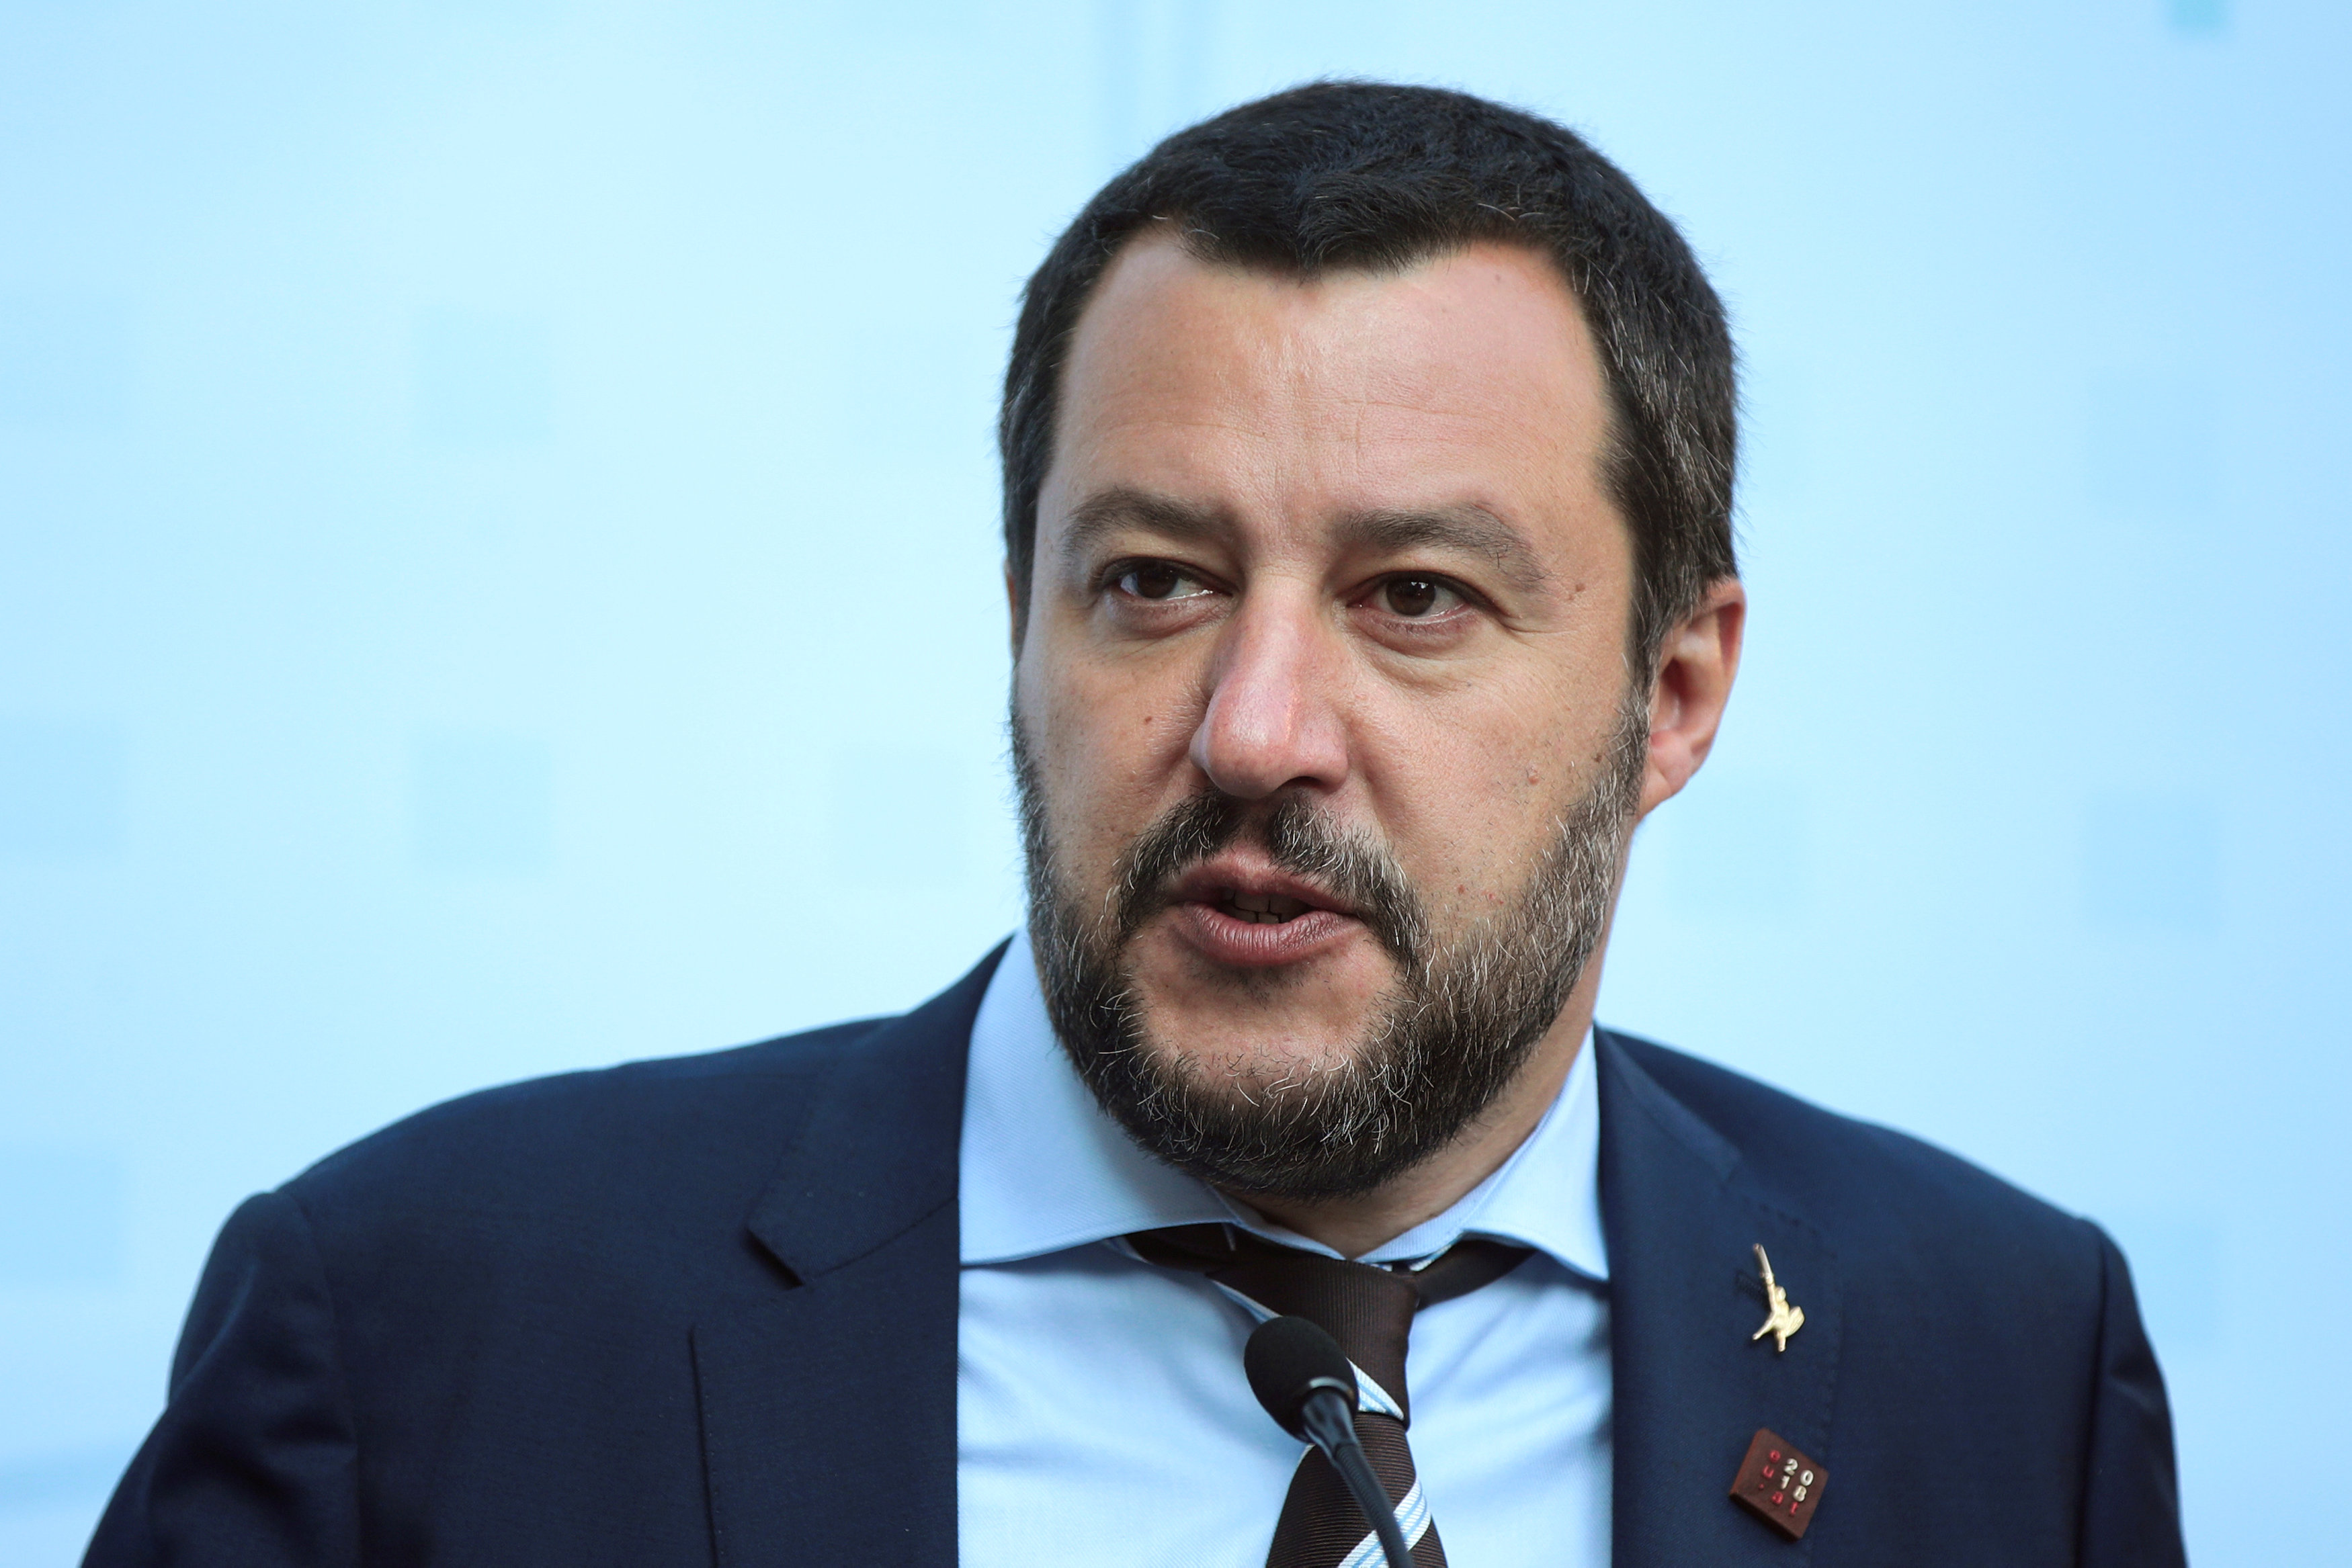 FILE PHOTO: Italy's Salvini attends a trilateral meeting in Innsbruck